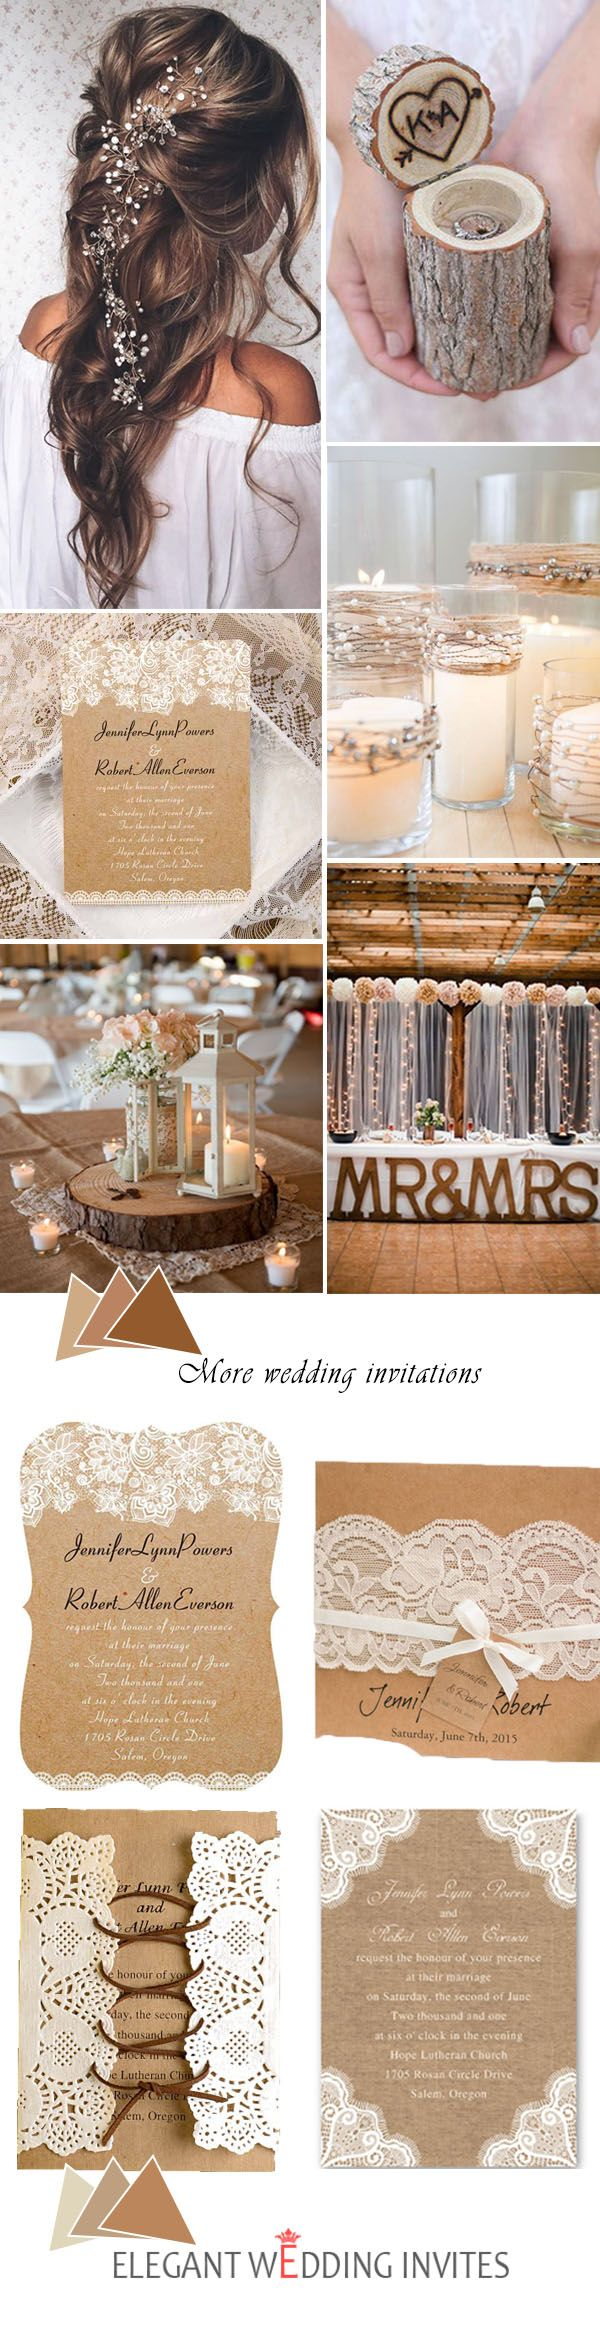 Top 3 Rustic Wedding Ideas and Matched Wedding Invitations